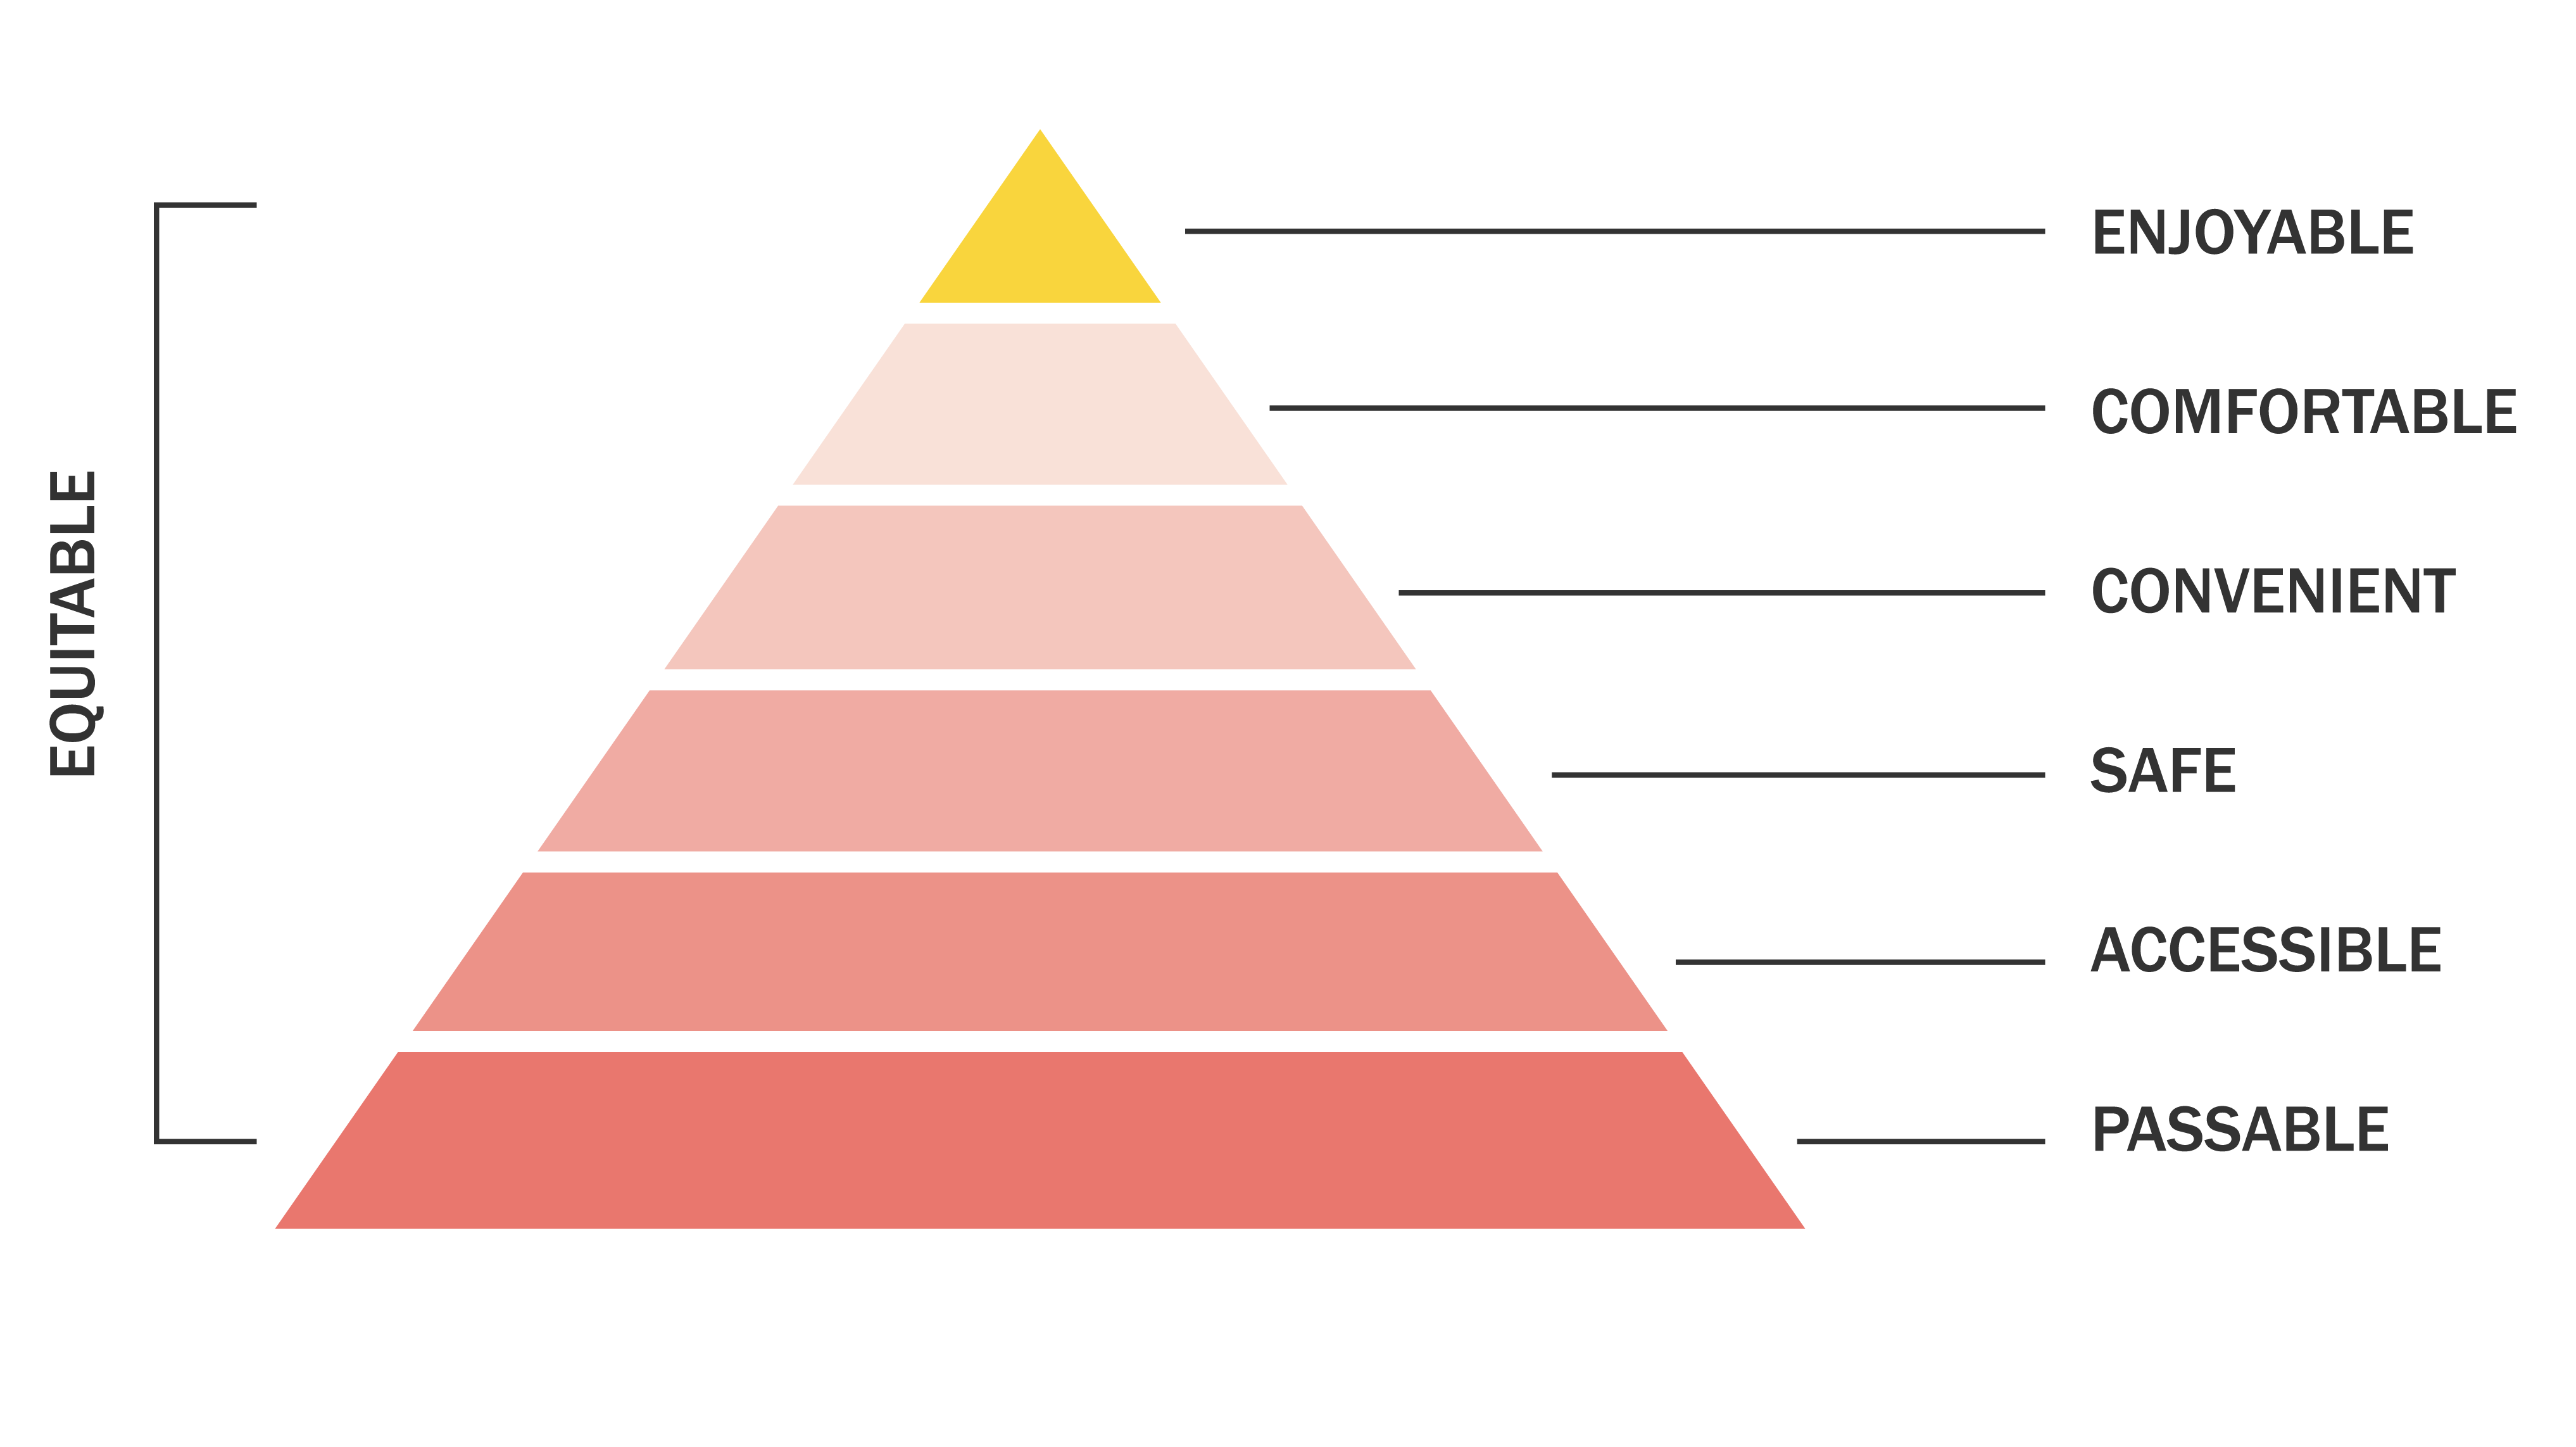 Pyramid showing the hierarchy of needs for walkability